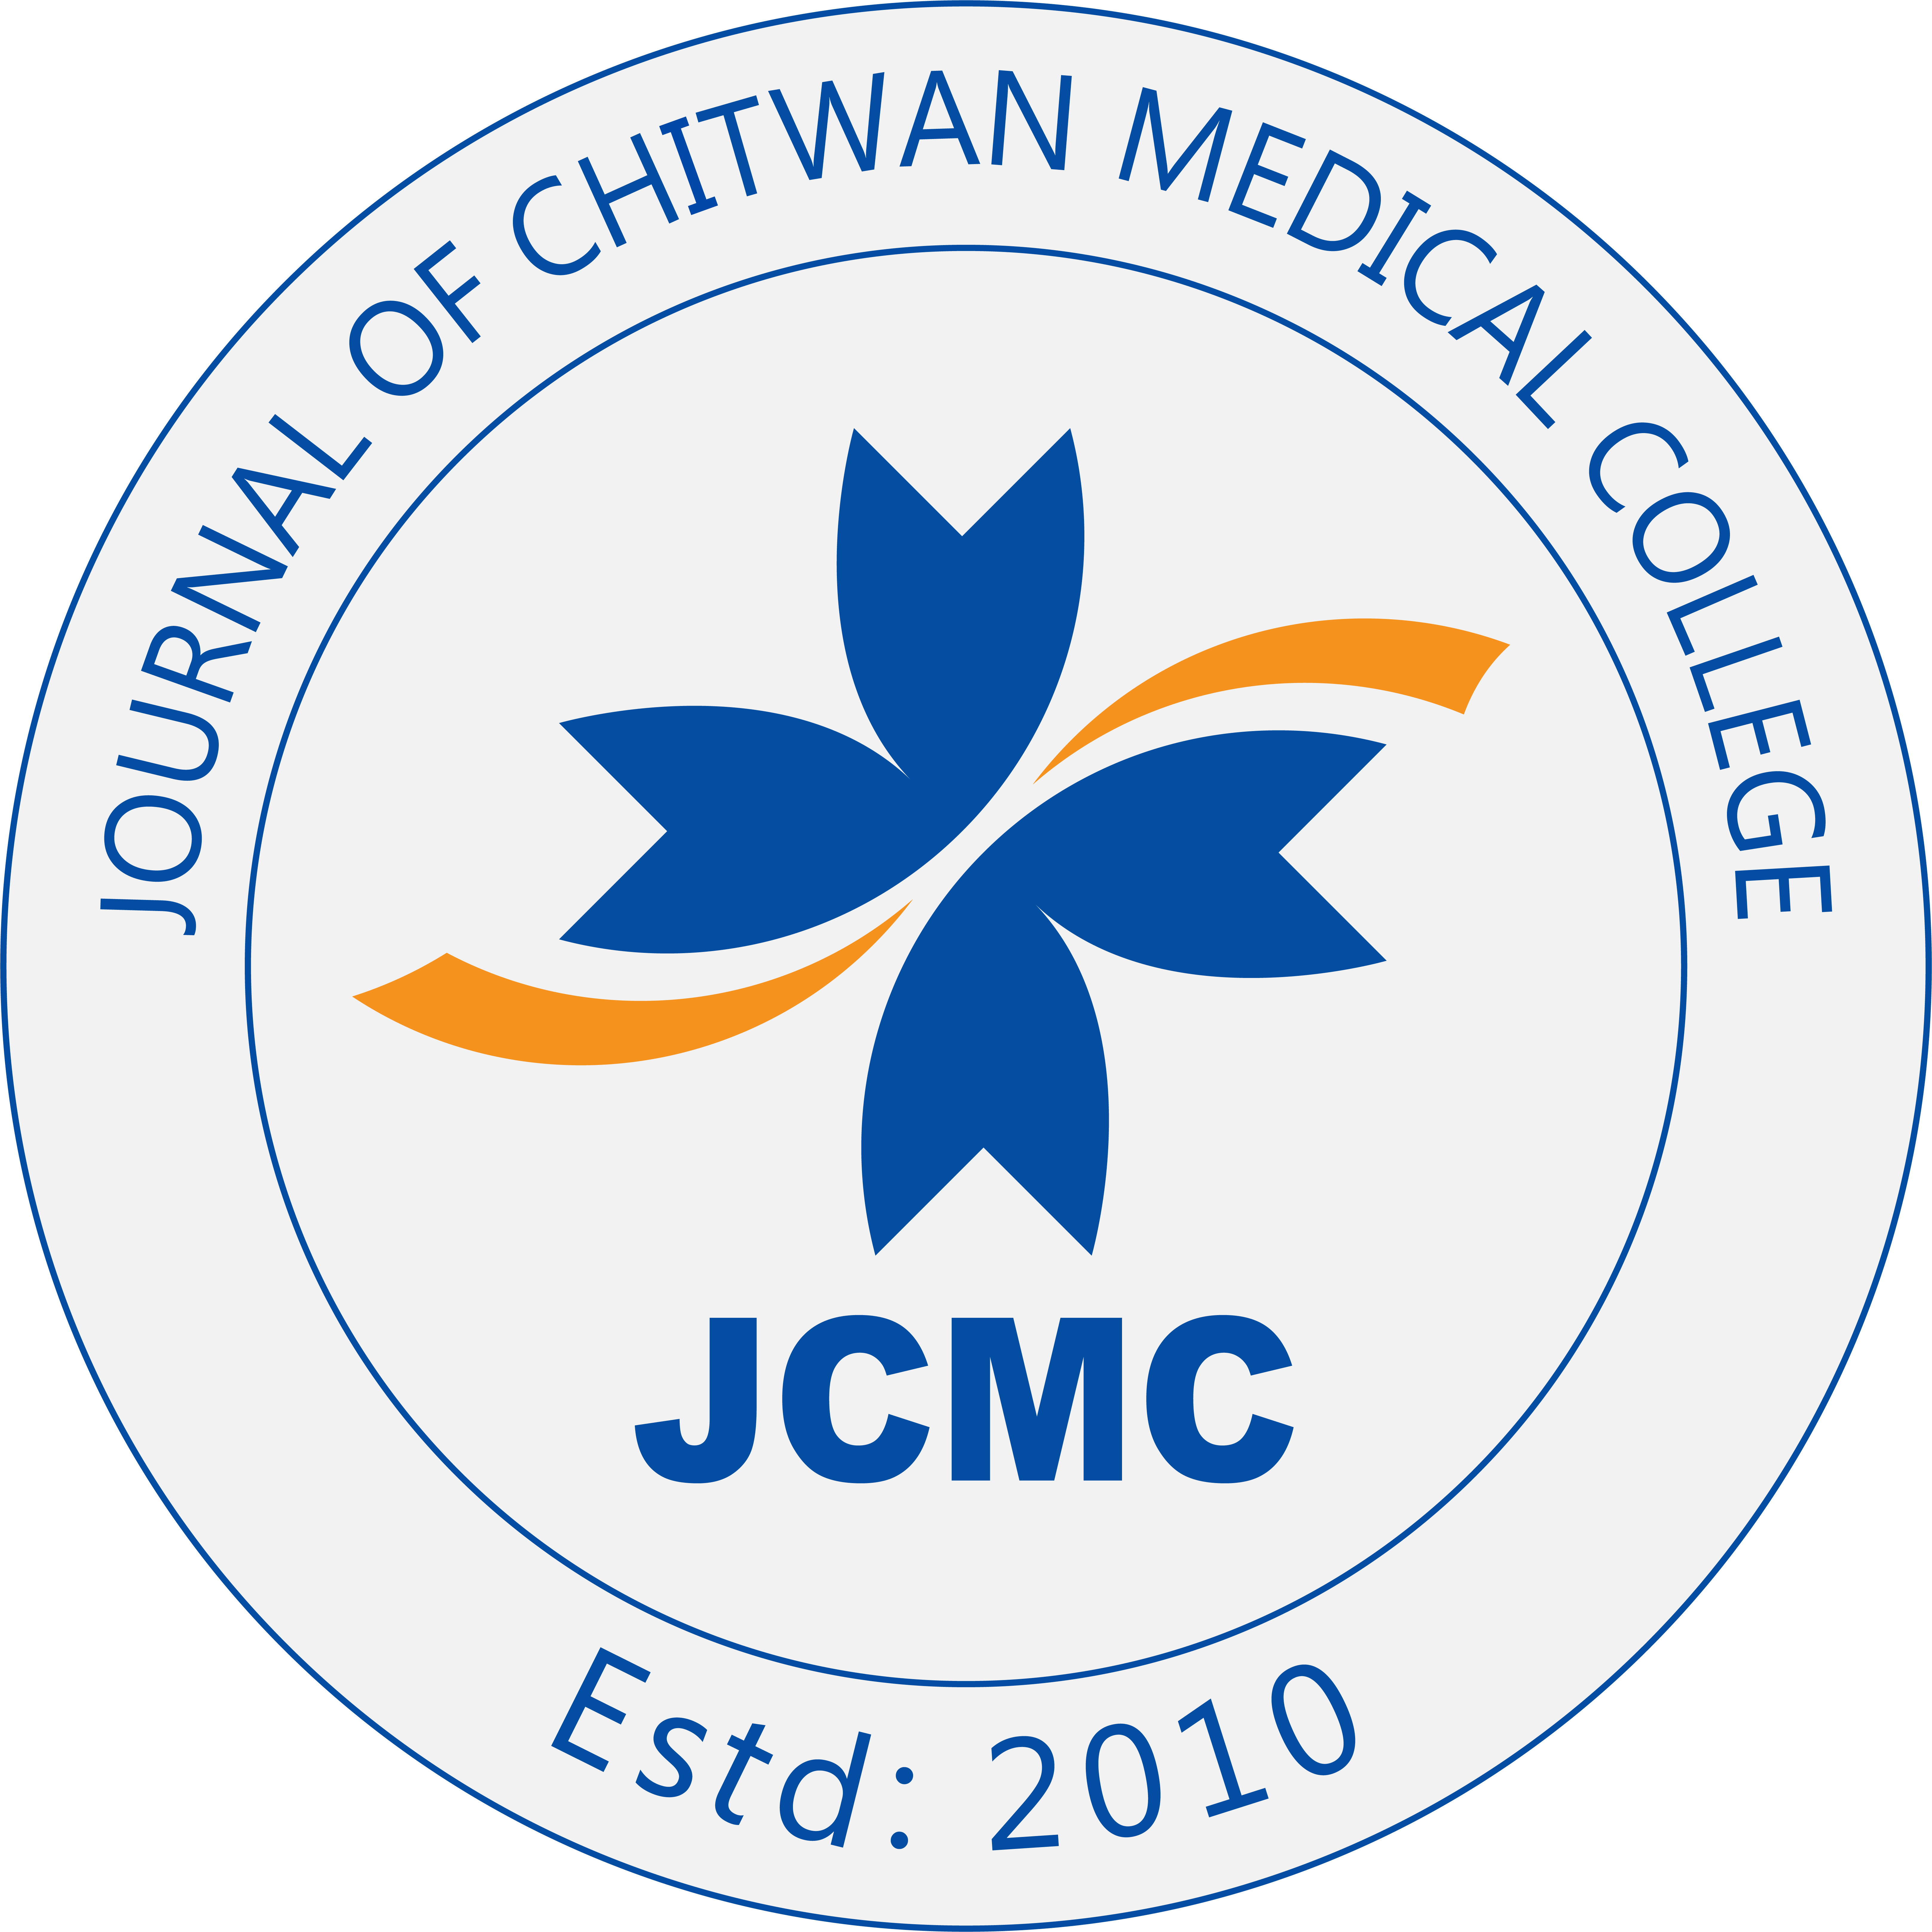 Journal of Chitwan Medical College